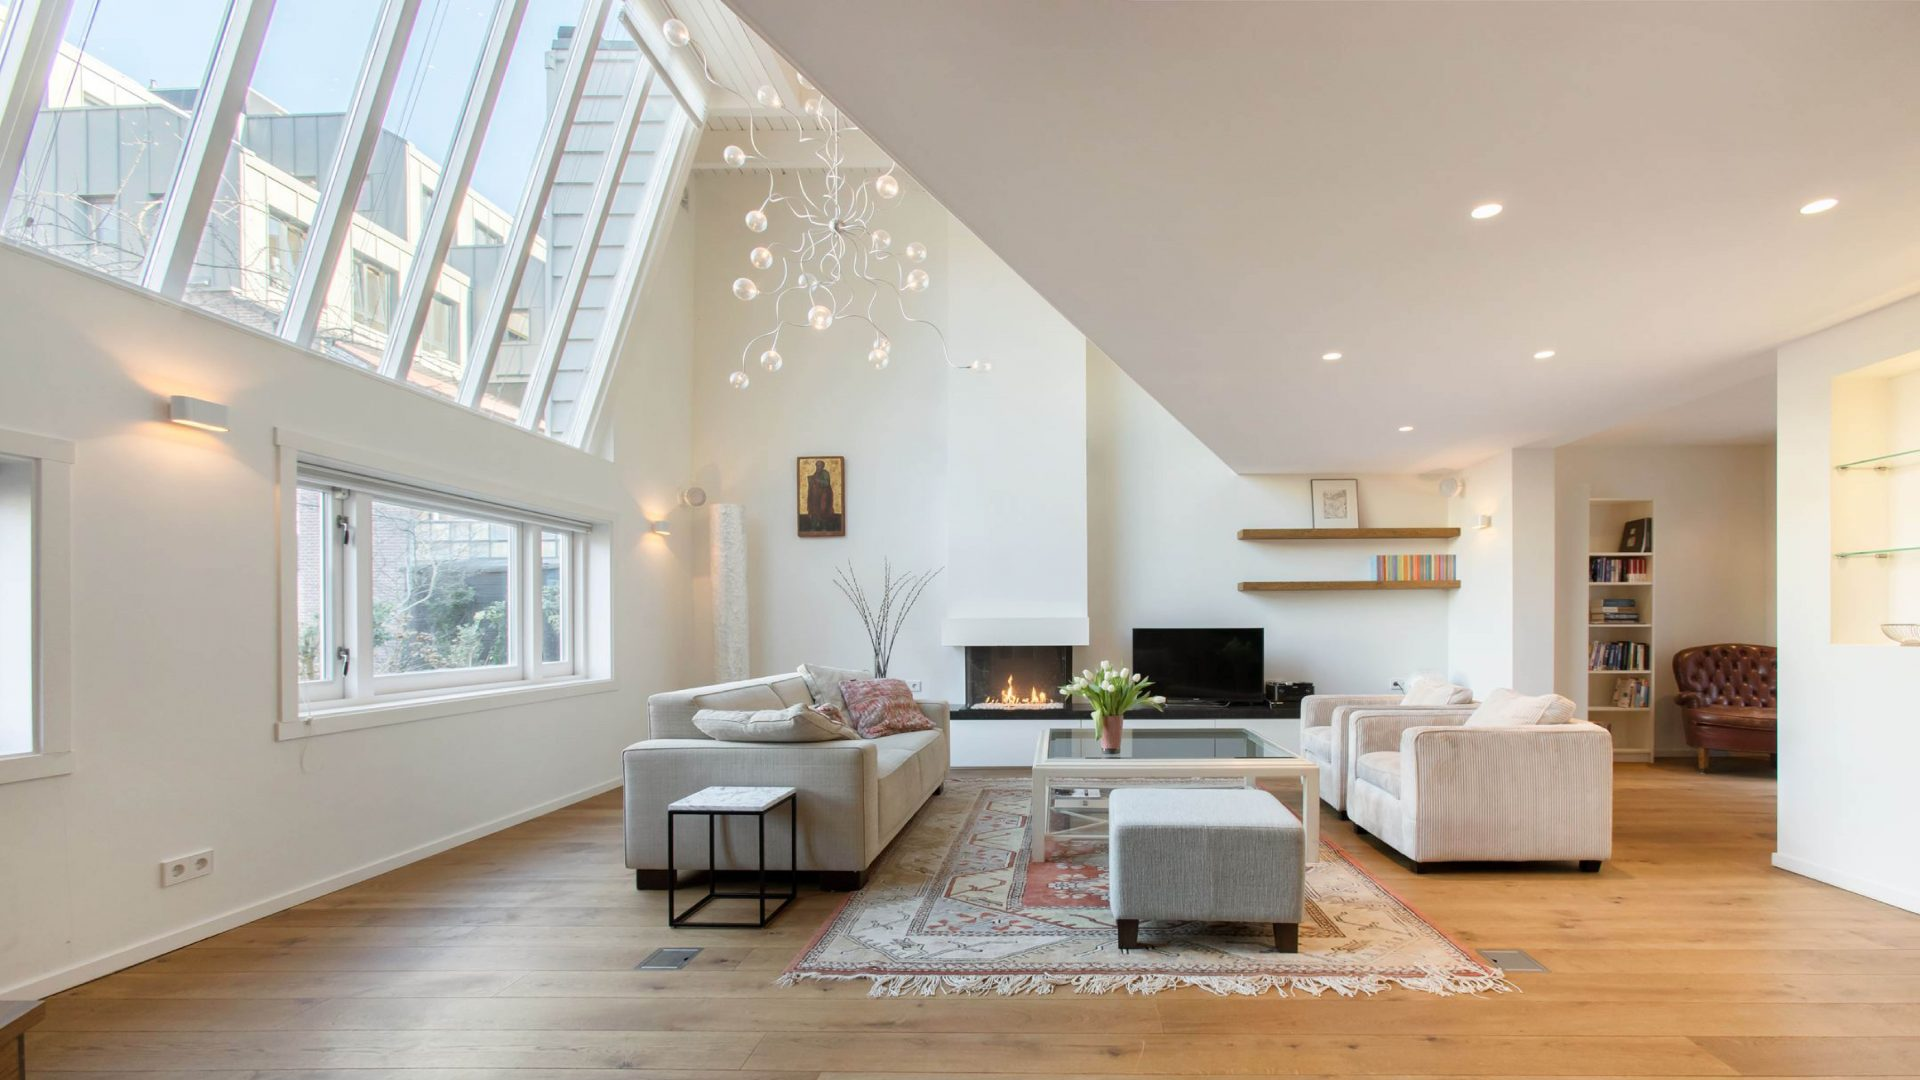 The Best Interior Designers From Amsterdam amsterdam The Best Interior Designers From Amsterdam 1223001 1920x1080 1 design Design Hubs Of The World – Top Interior Designers From Amsterdam 1223001 1920x1080 1